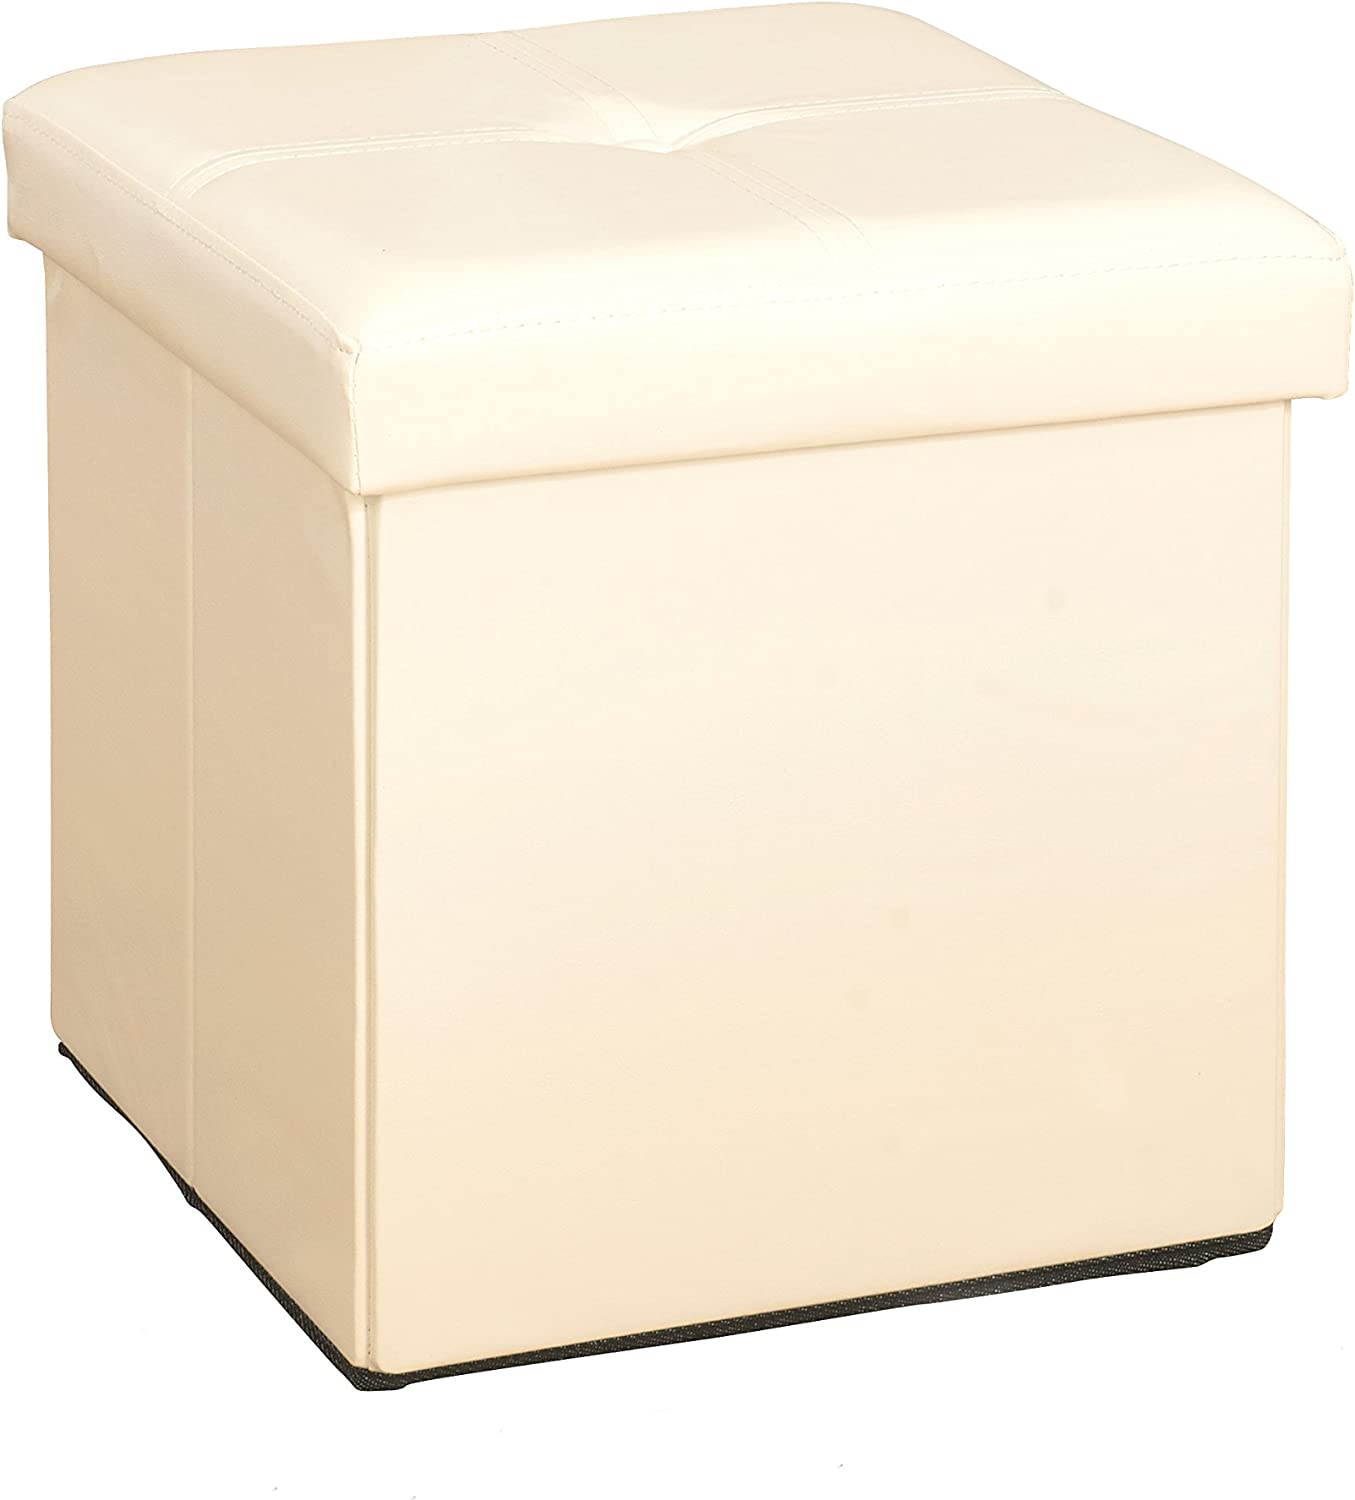 Simplify Kennedy Home Collection 30-Inch Faux Leather Folding Storage Ottoman, IVO